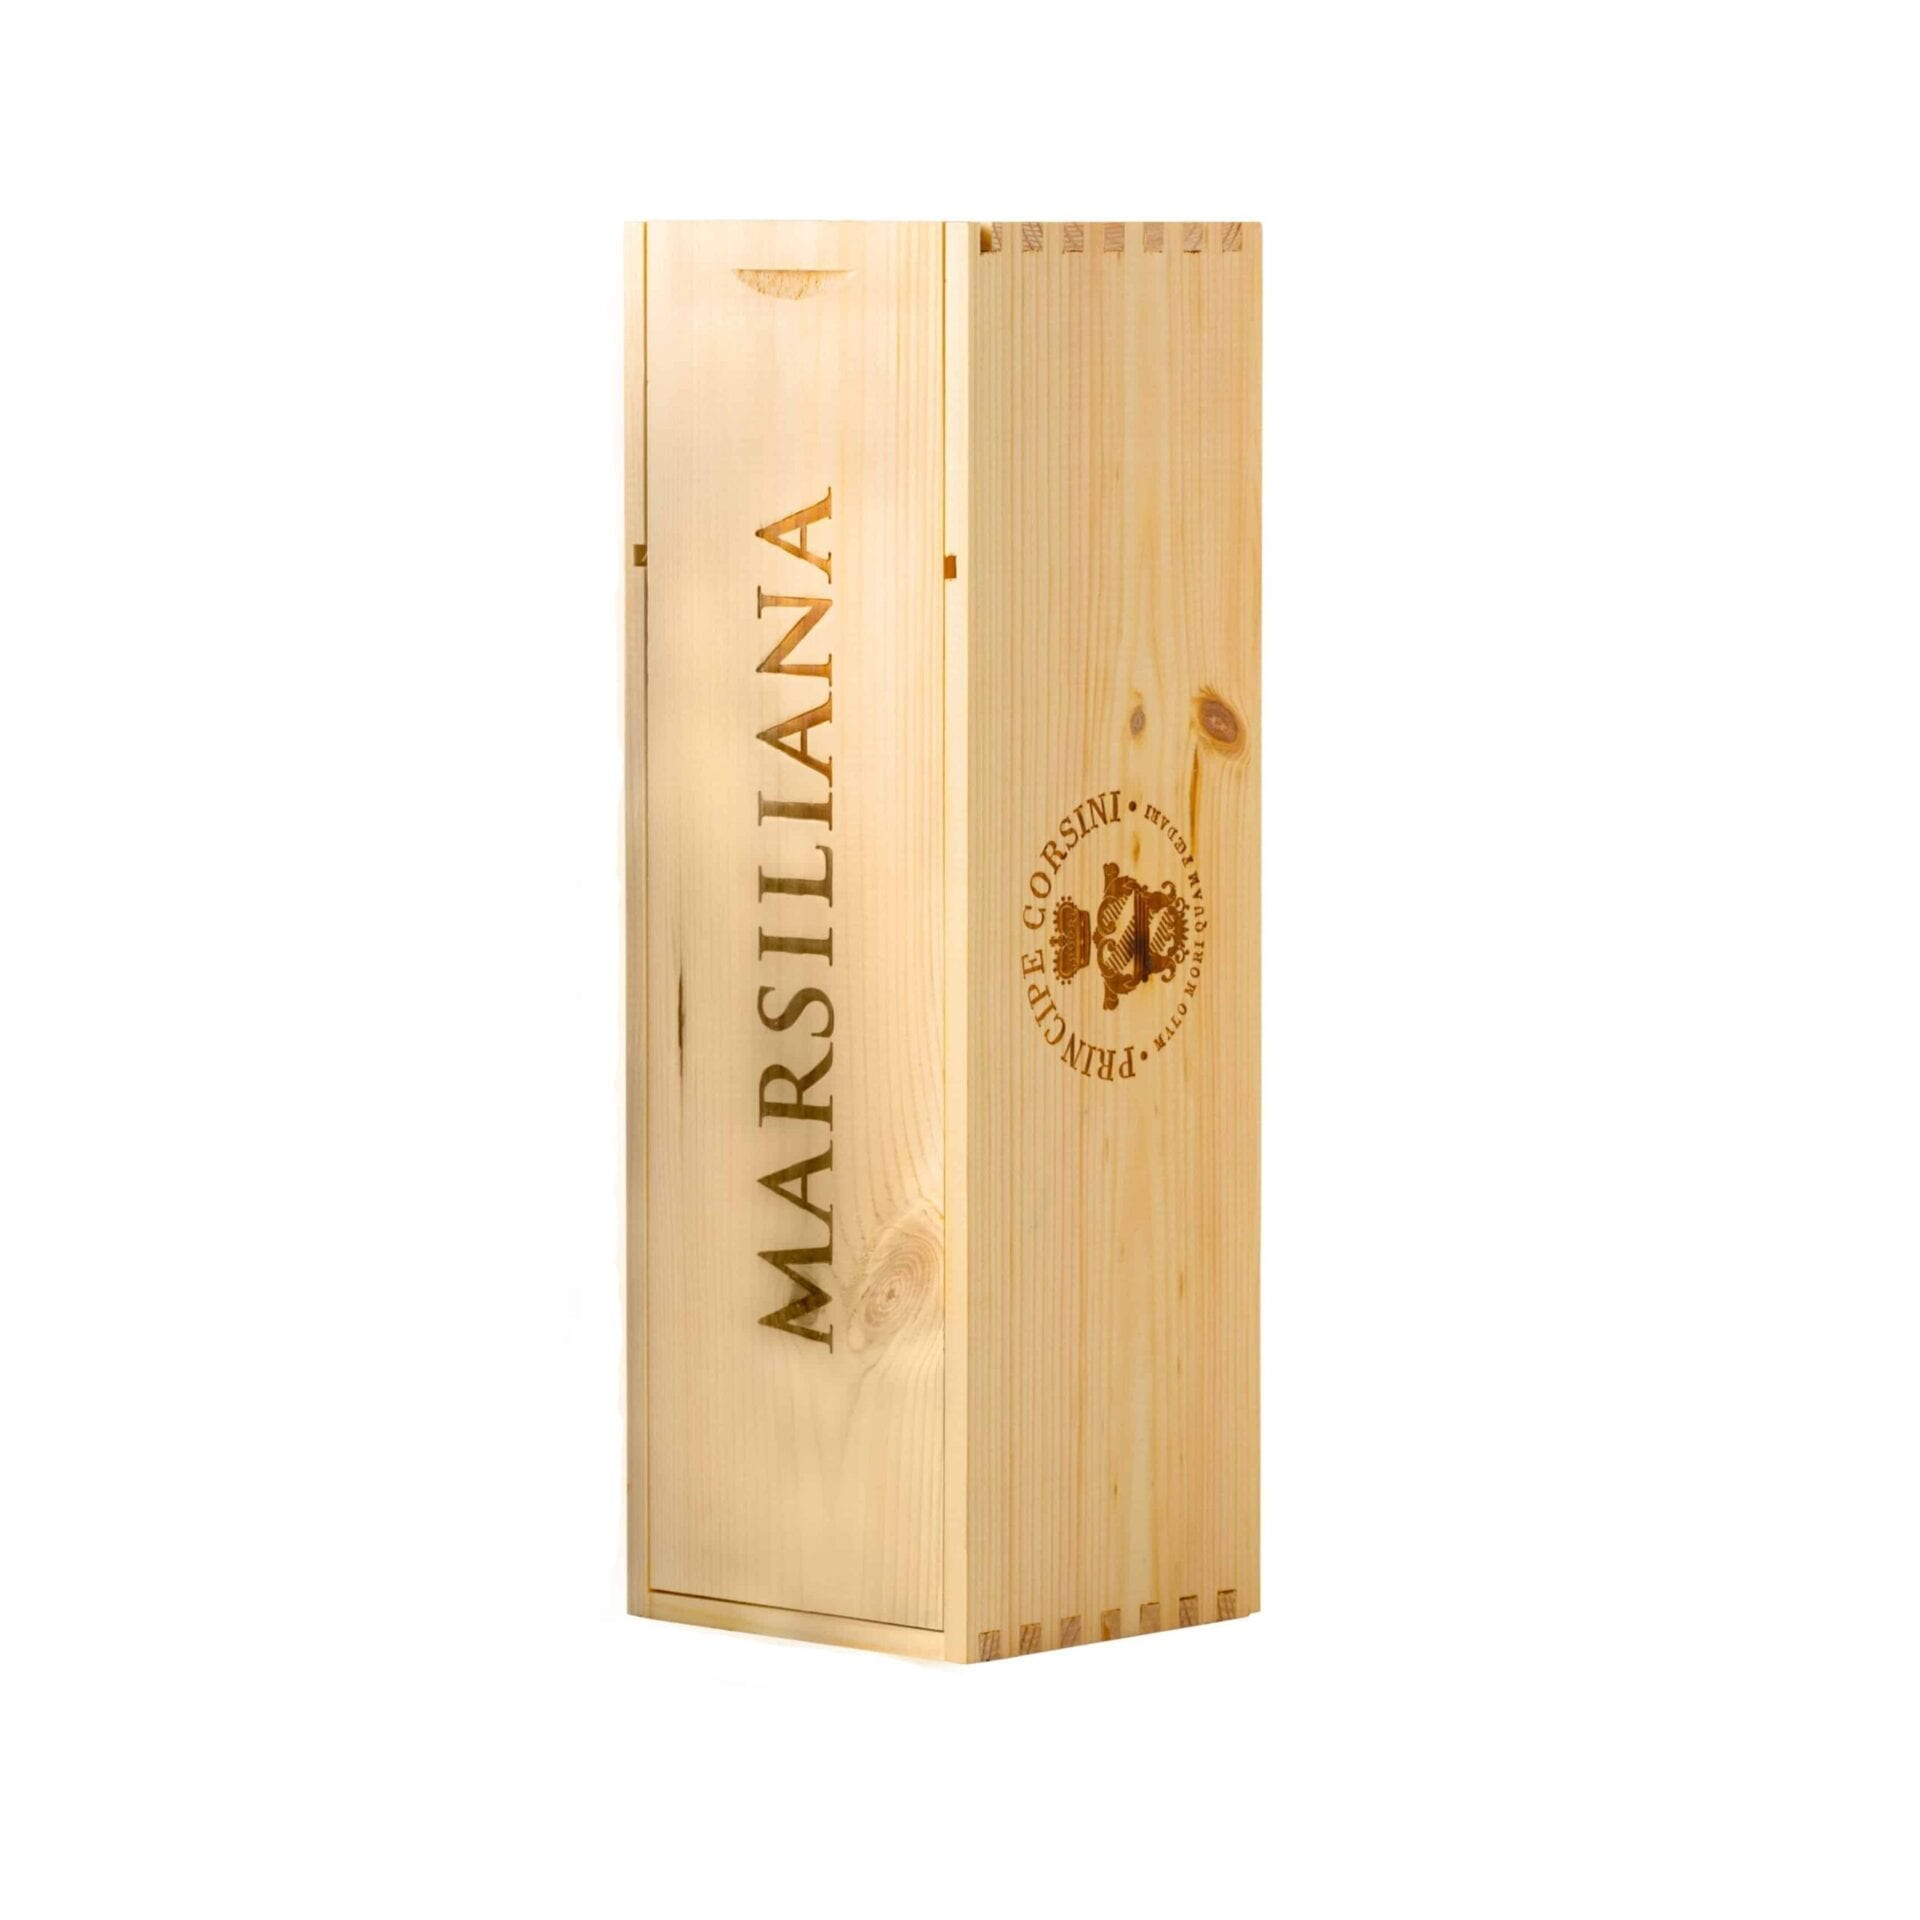 Wooden Box for Magnum bottle 1,5 L Marsiliana